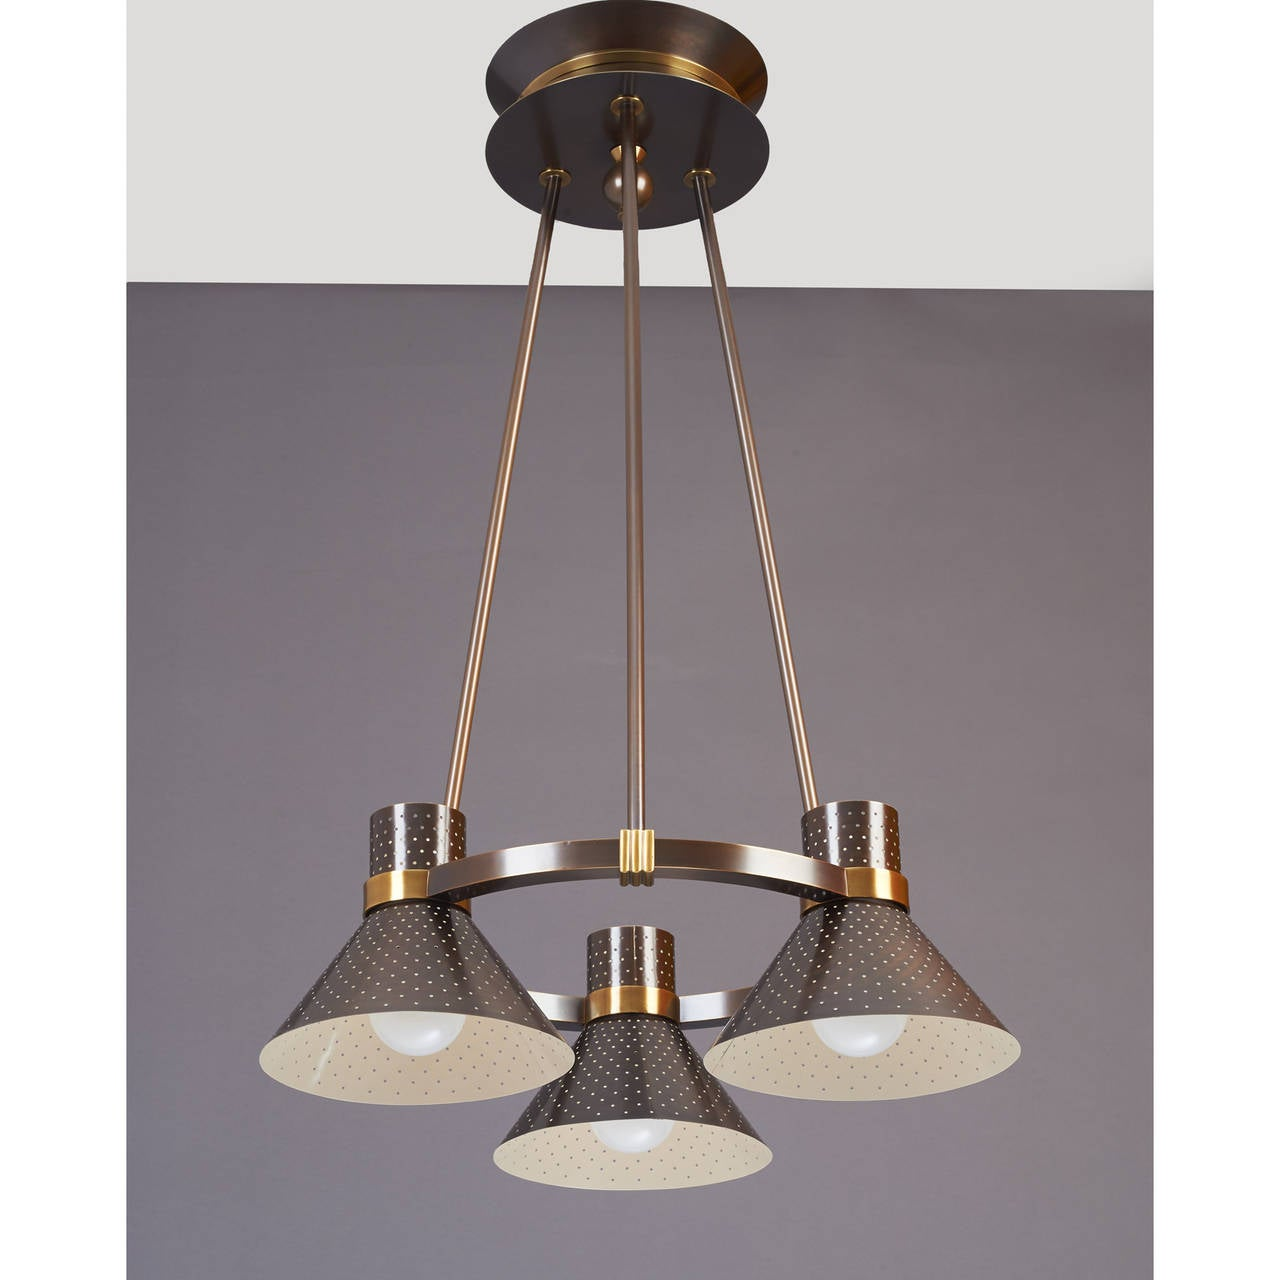 Modernist three-light chandelier with perforated metal shades.